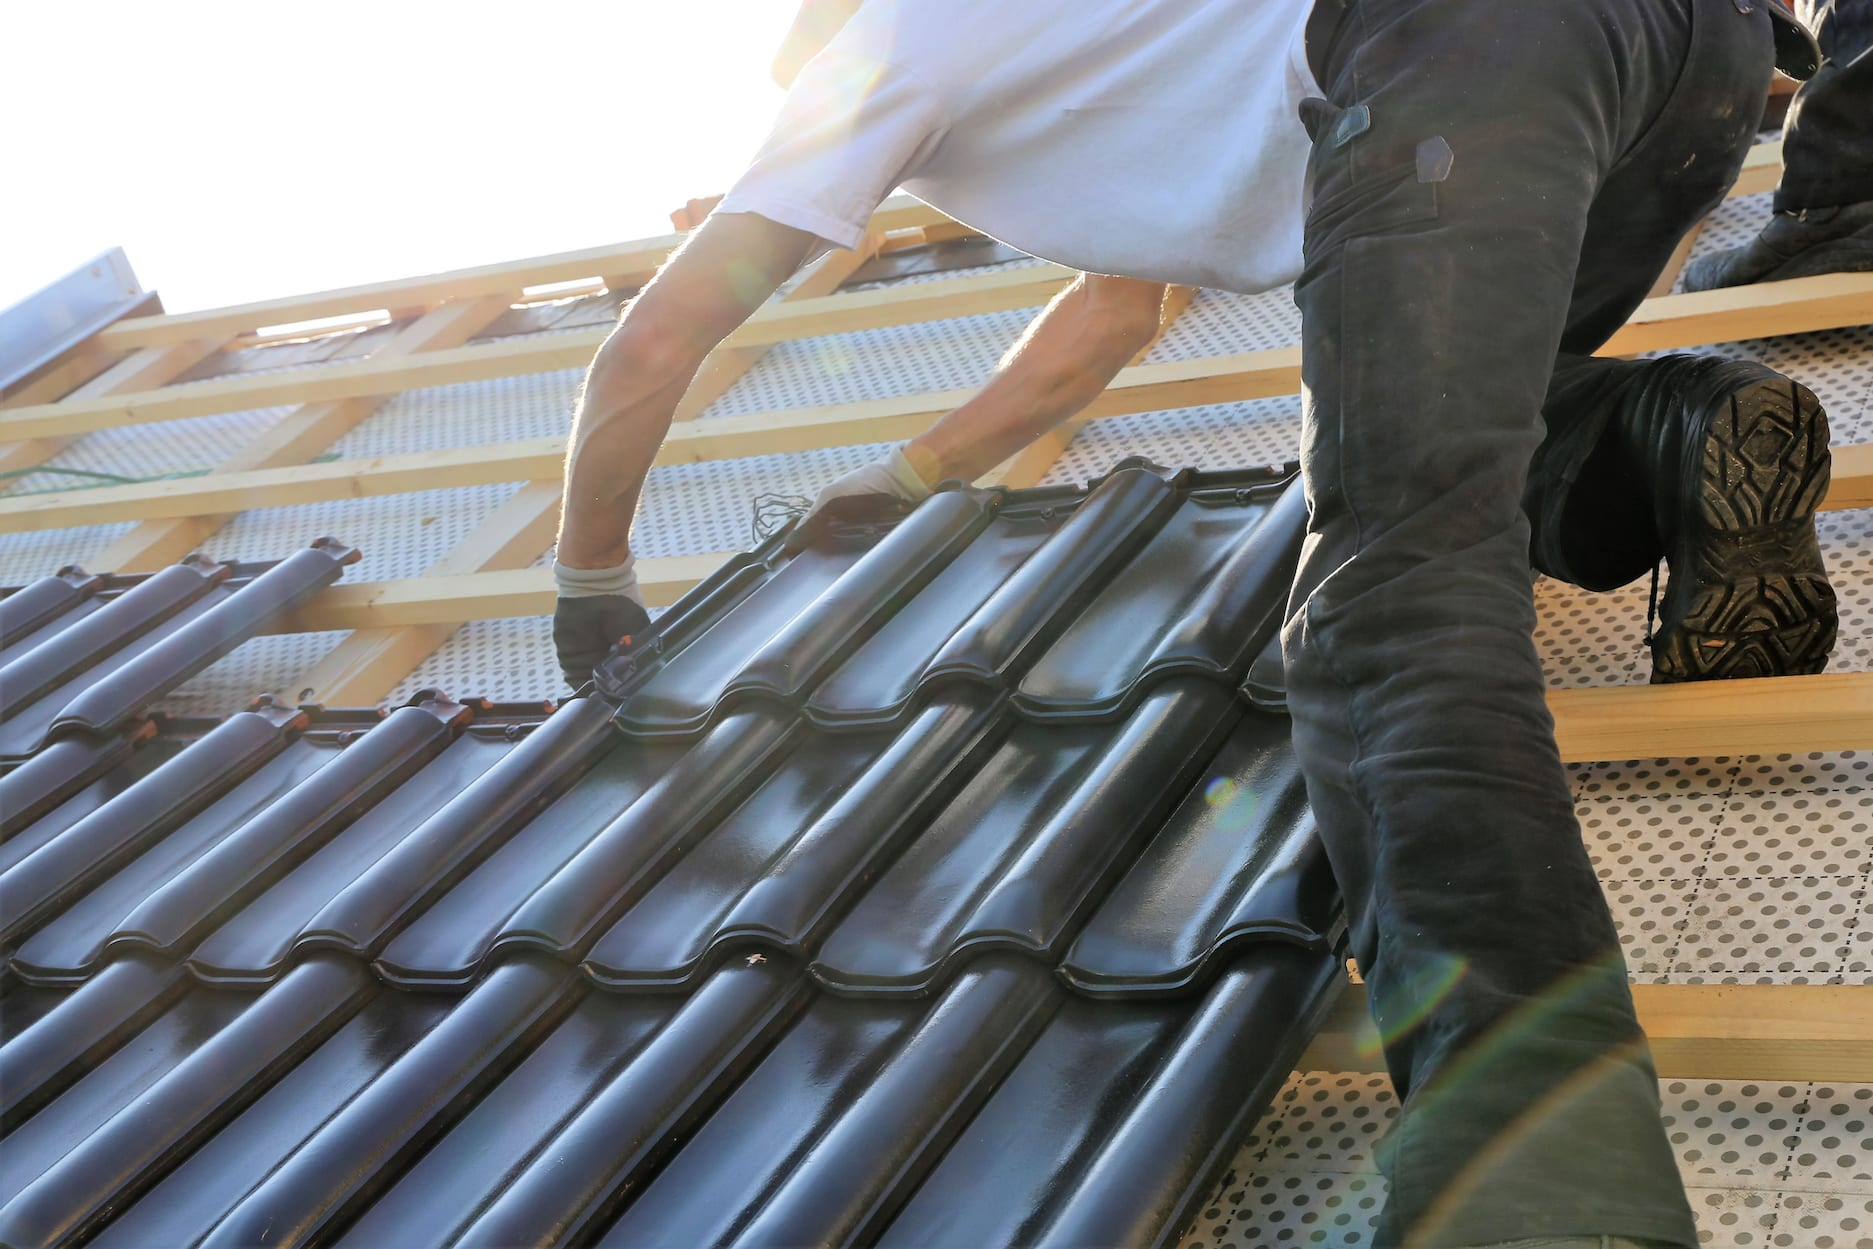 Roofers101 Helps Roofing Companies Grow: Are You Ready To Get More Customers?